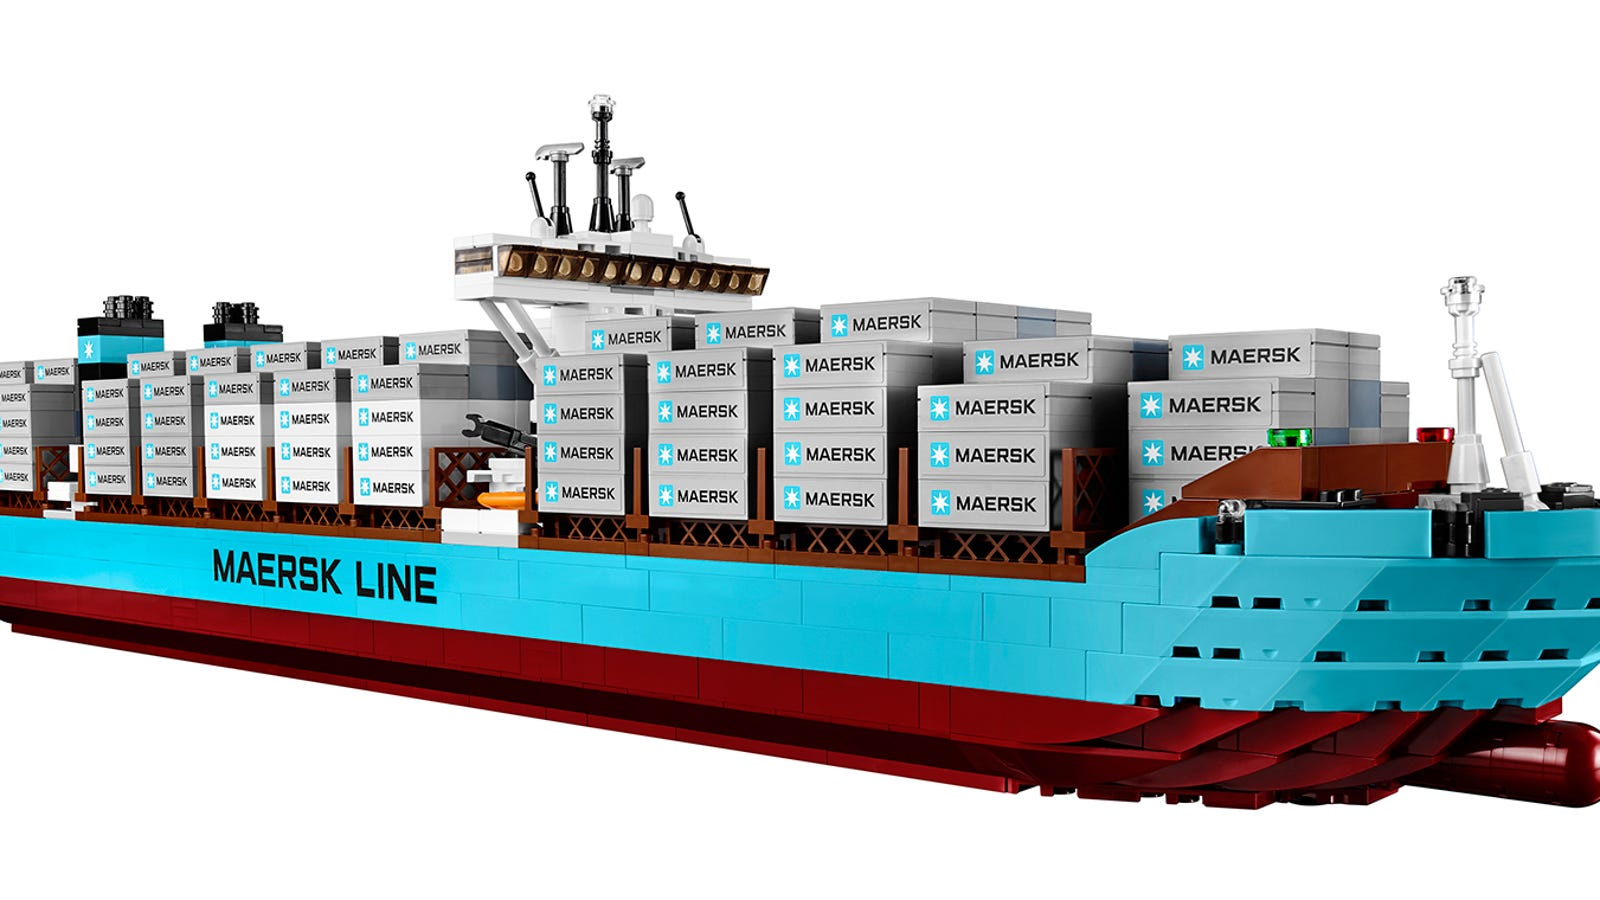 Largest Cargo Ship >> The World S Largest Cargo Ship Is Now Available As A Giant Lego Set